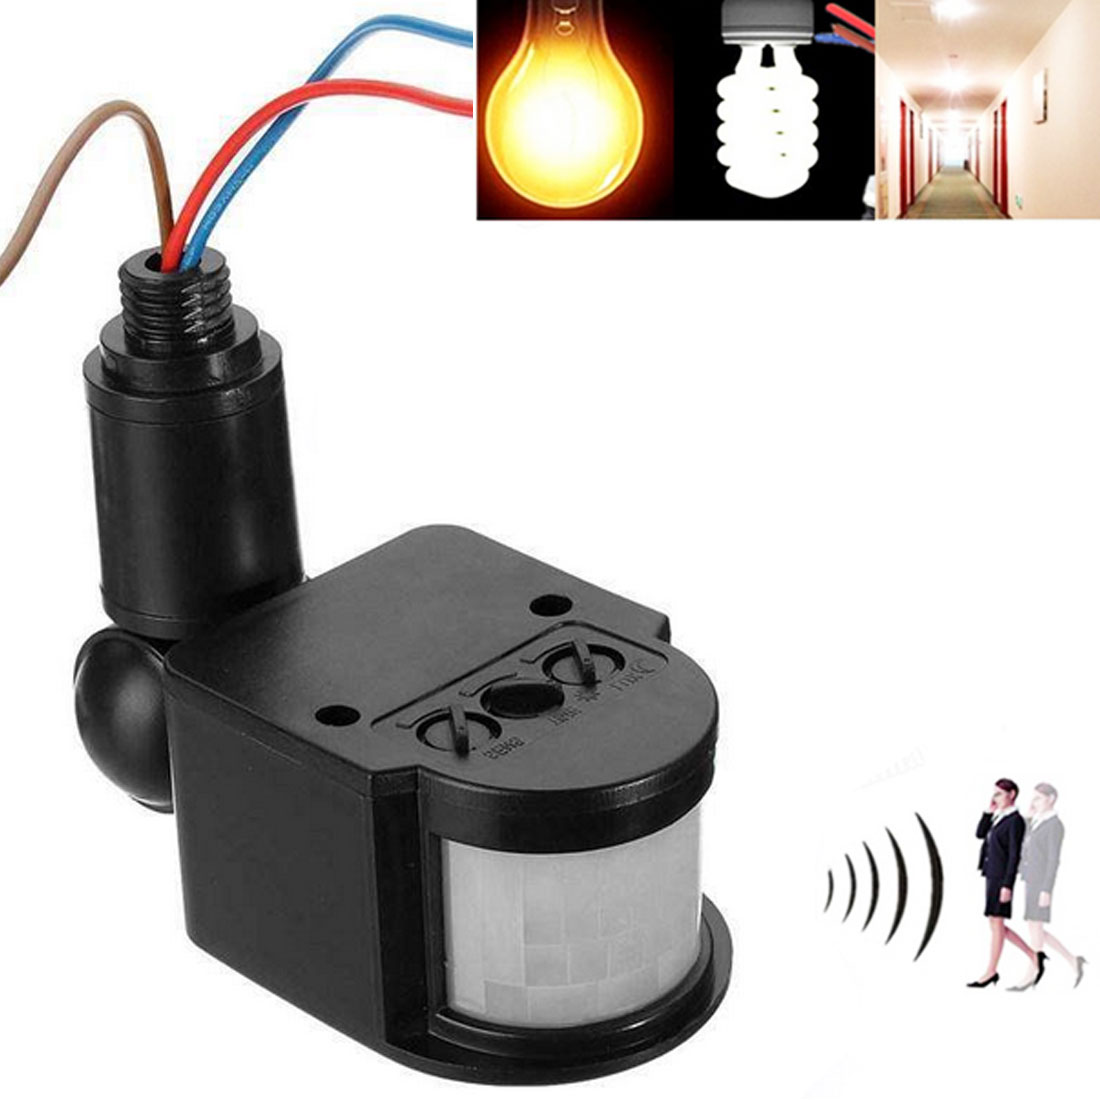 LED Motion Sensor 12V Automatic Infrared PIR Movement Detector Wall Mount Timer Outdoor 12 Volt Sensor Light Switch